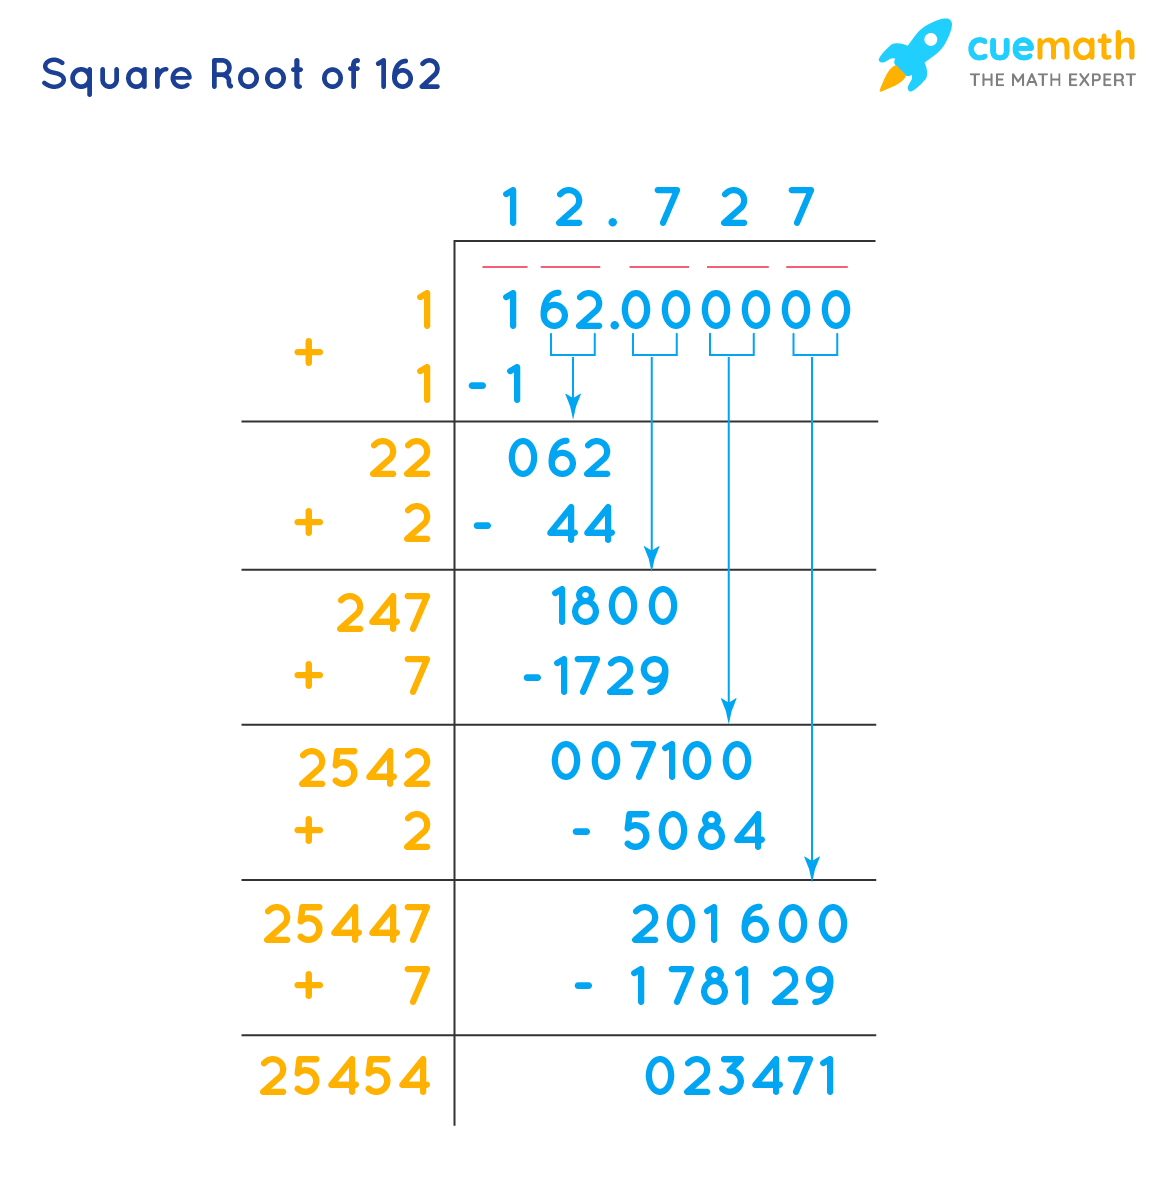 Square Root of 162